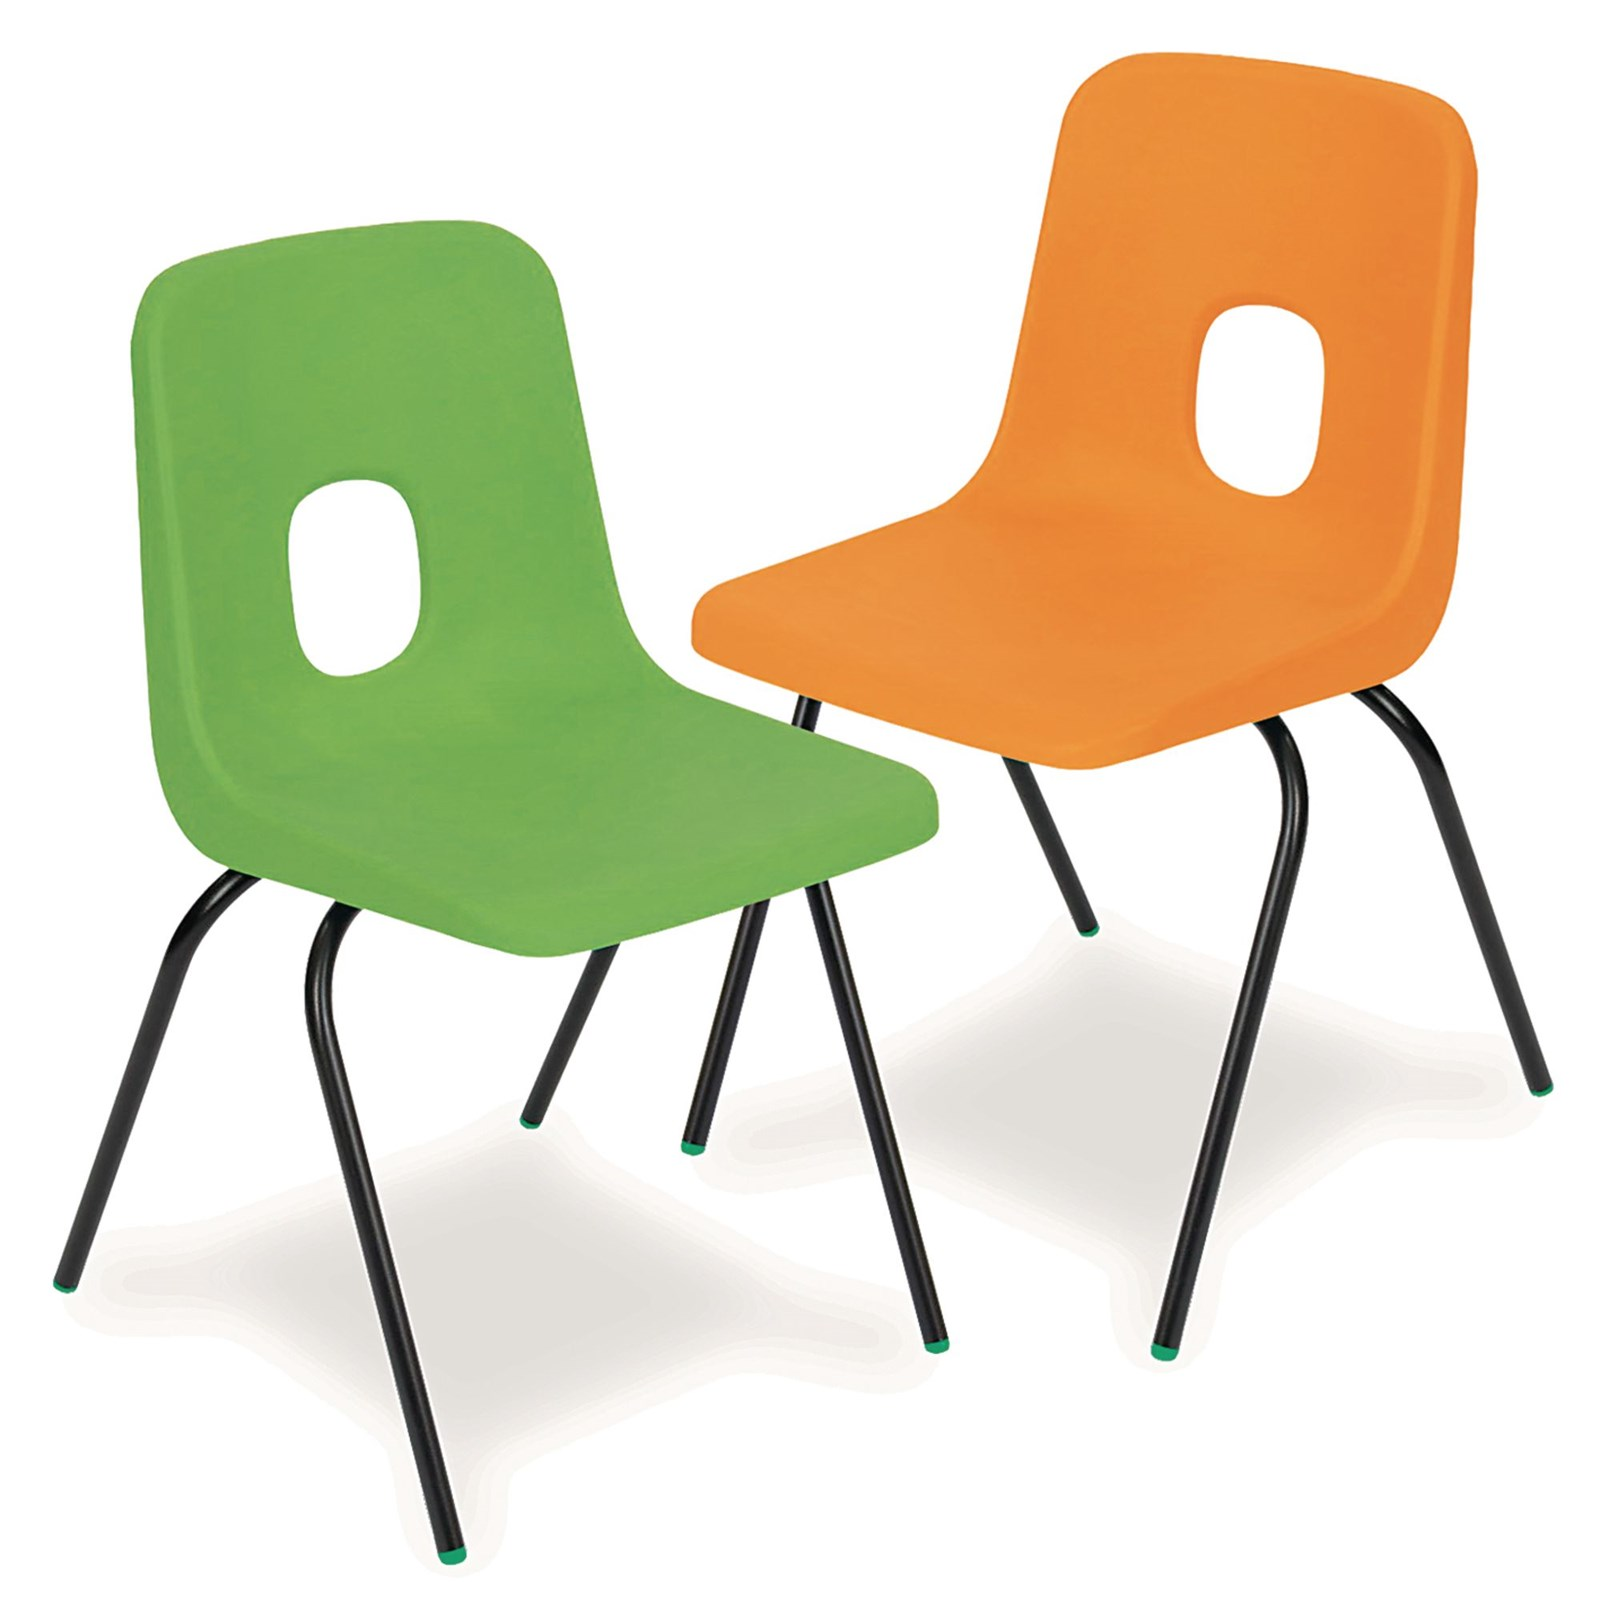 Series E Polypropylene Classroom Chair Orange 390mm